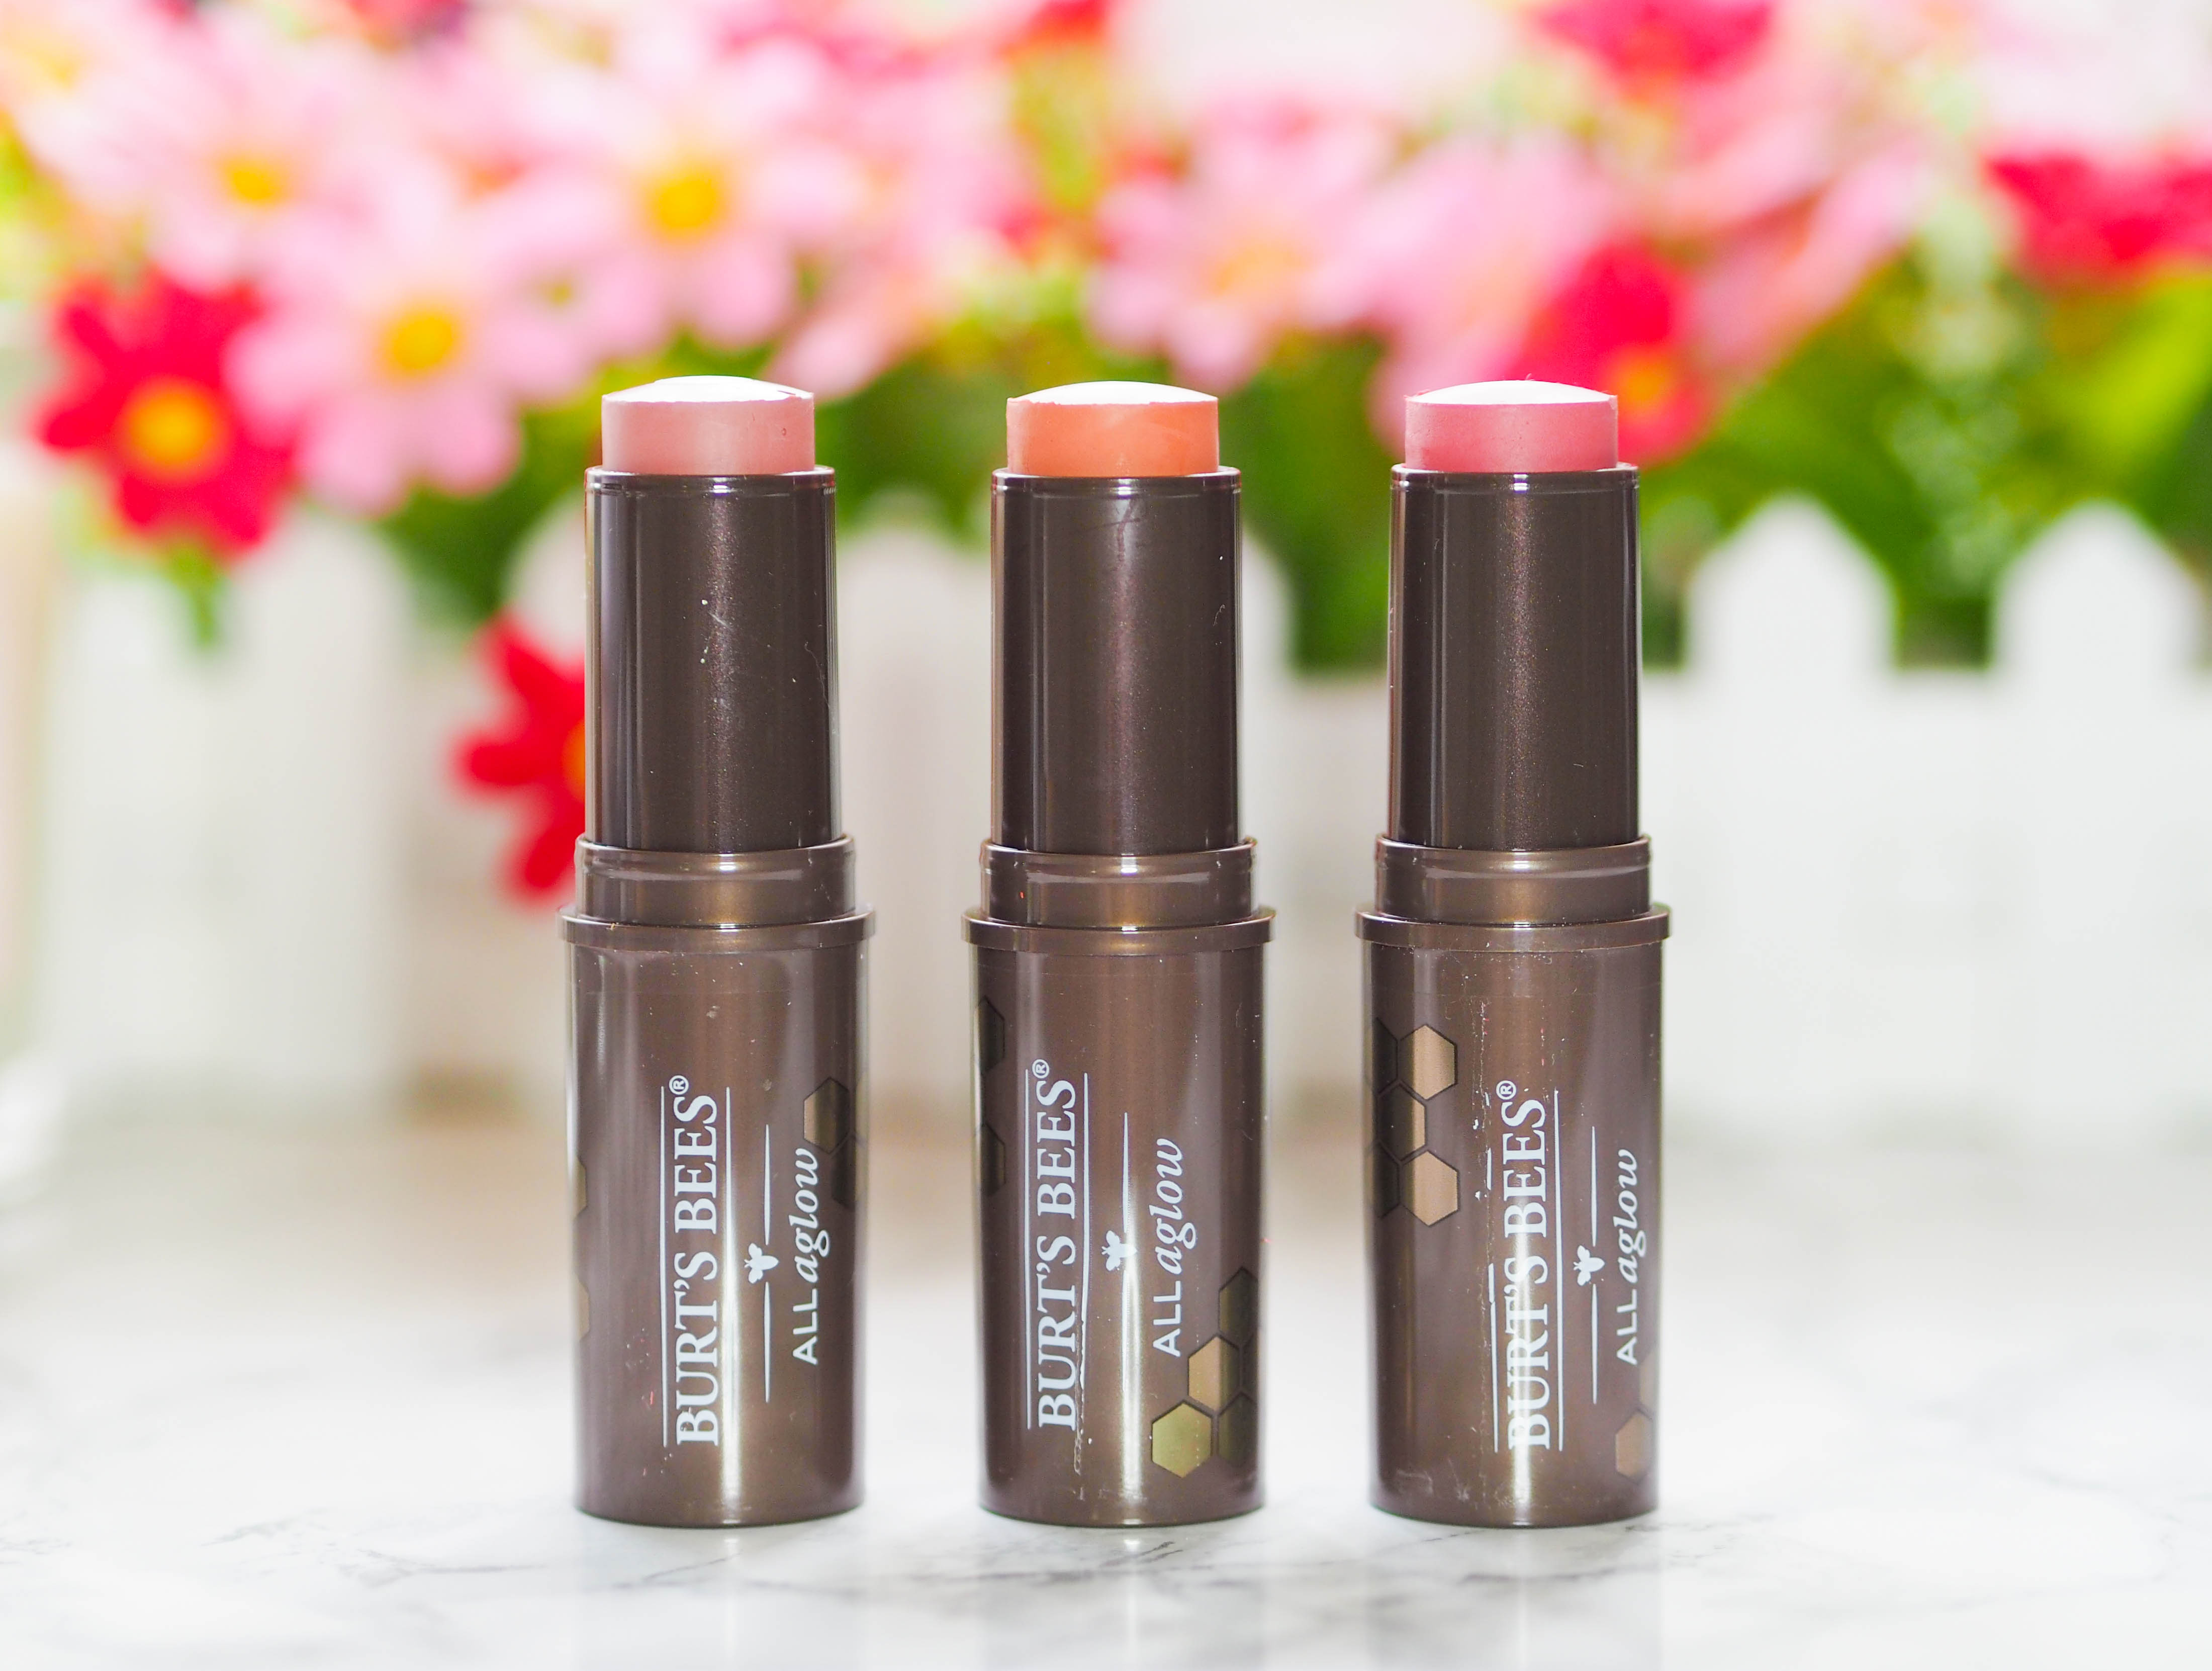 Burt's Bees All Aglow Lip and Cheek Sticks